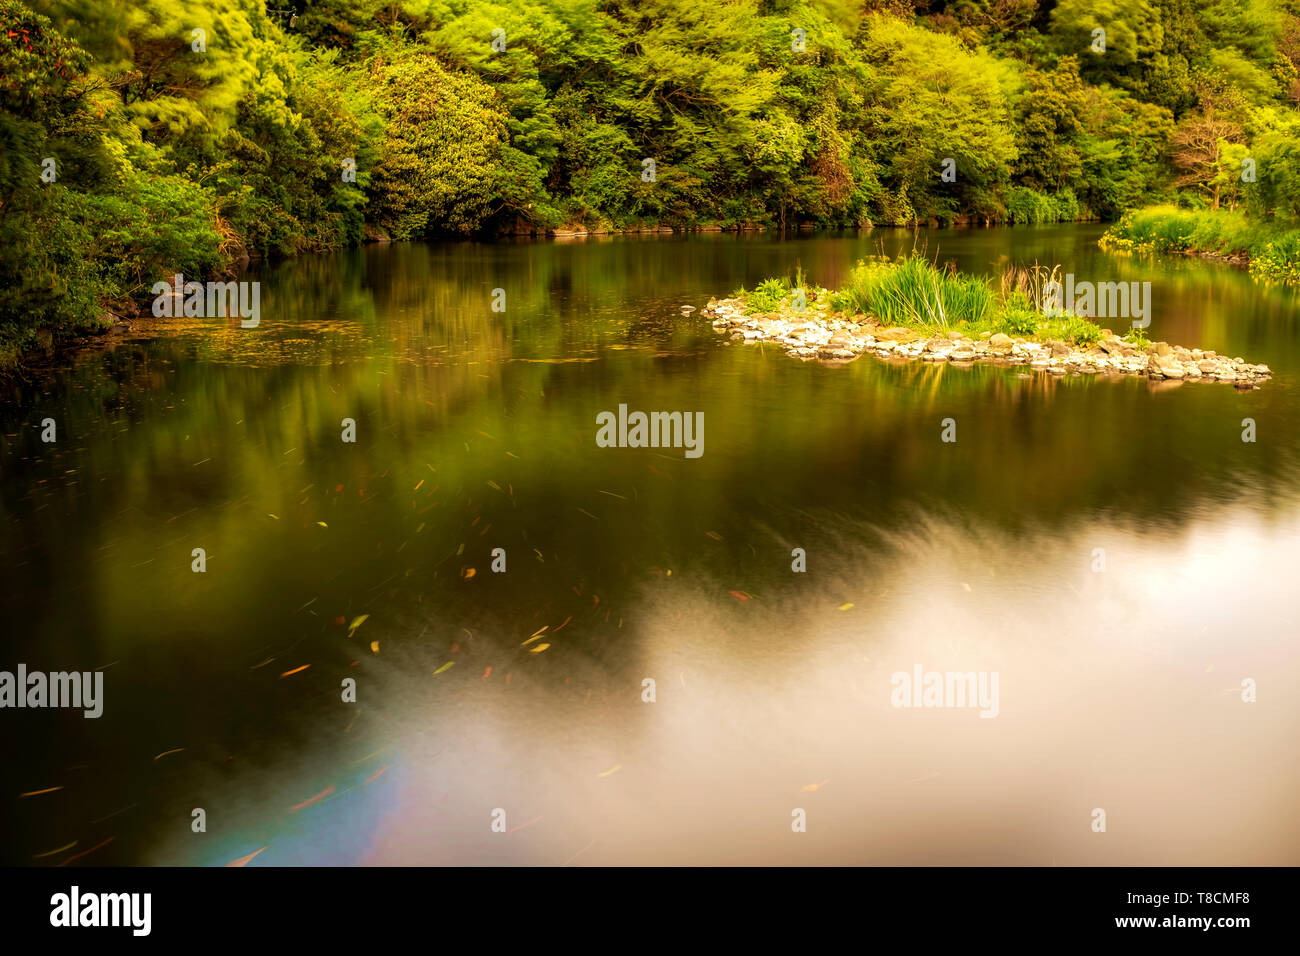 landscape view on the river side with green trees, Jeju, South Korea - Stock Image